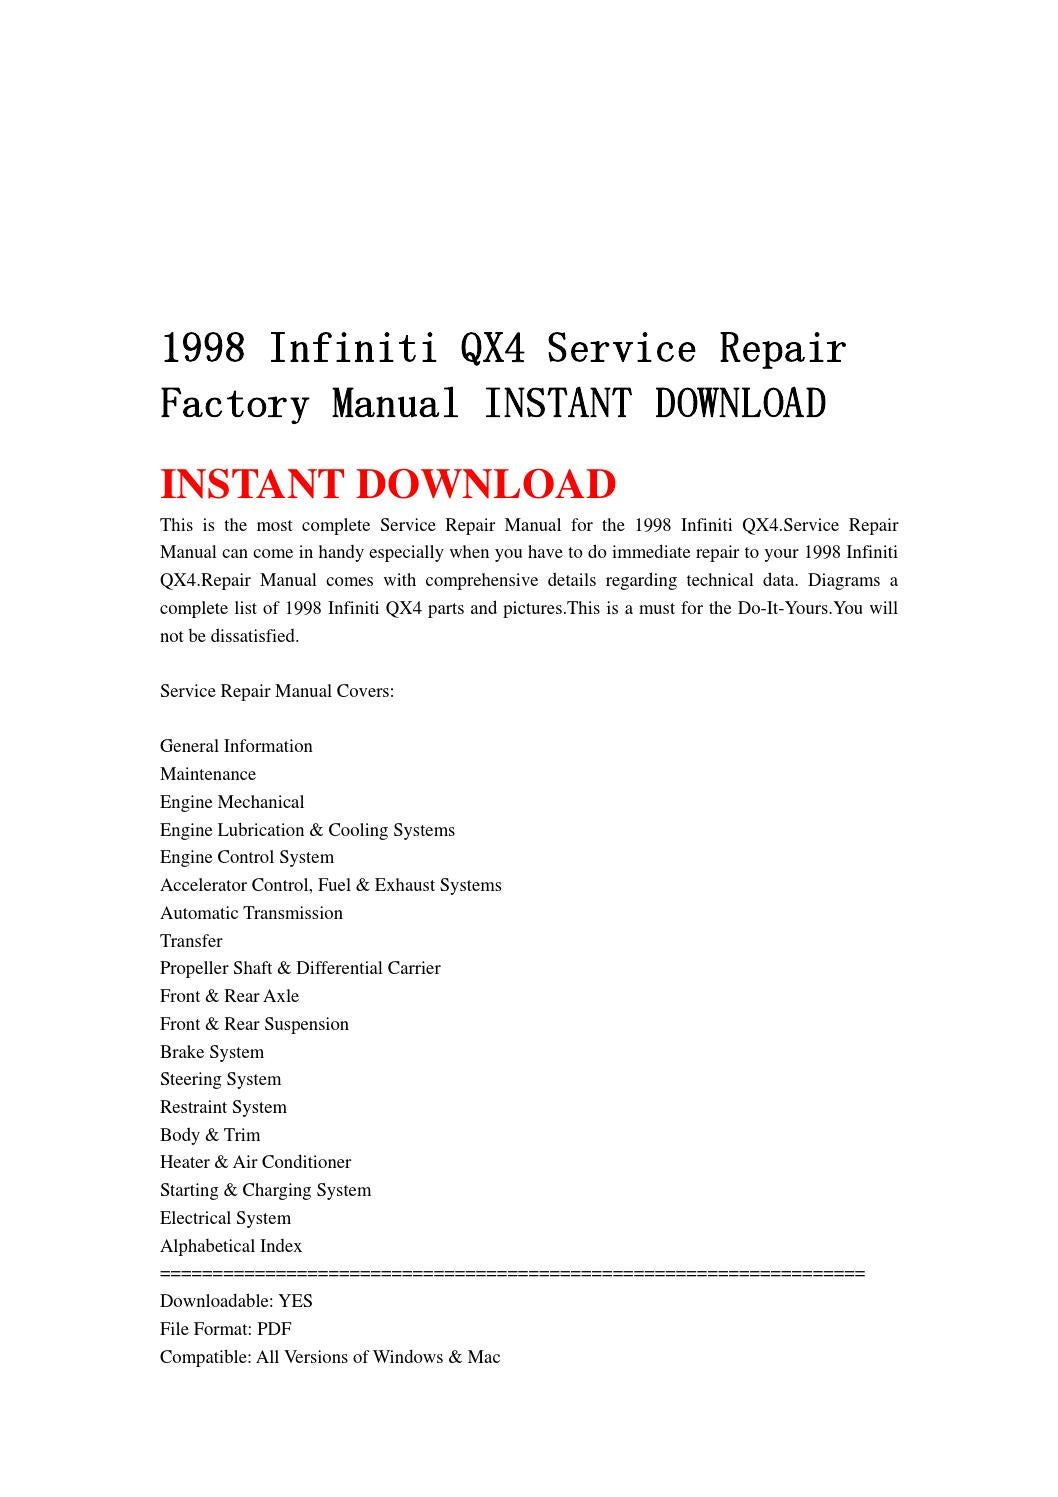 qx4 engine diagram cooling system wiring library E36 Engine Cooling System Diagram 1998 infiniti qx4 service repair factory manual instant download by jnshefjsne issuu